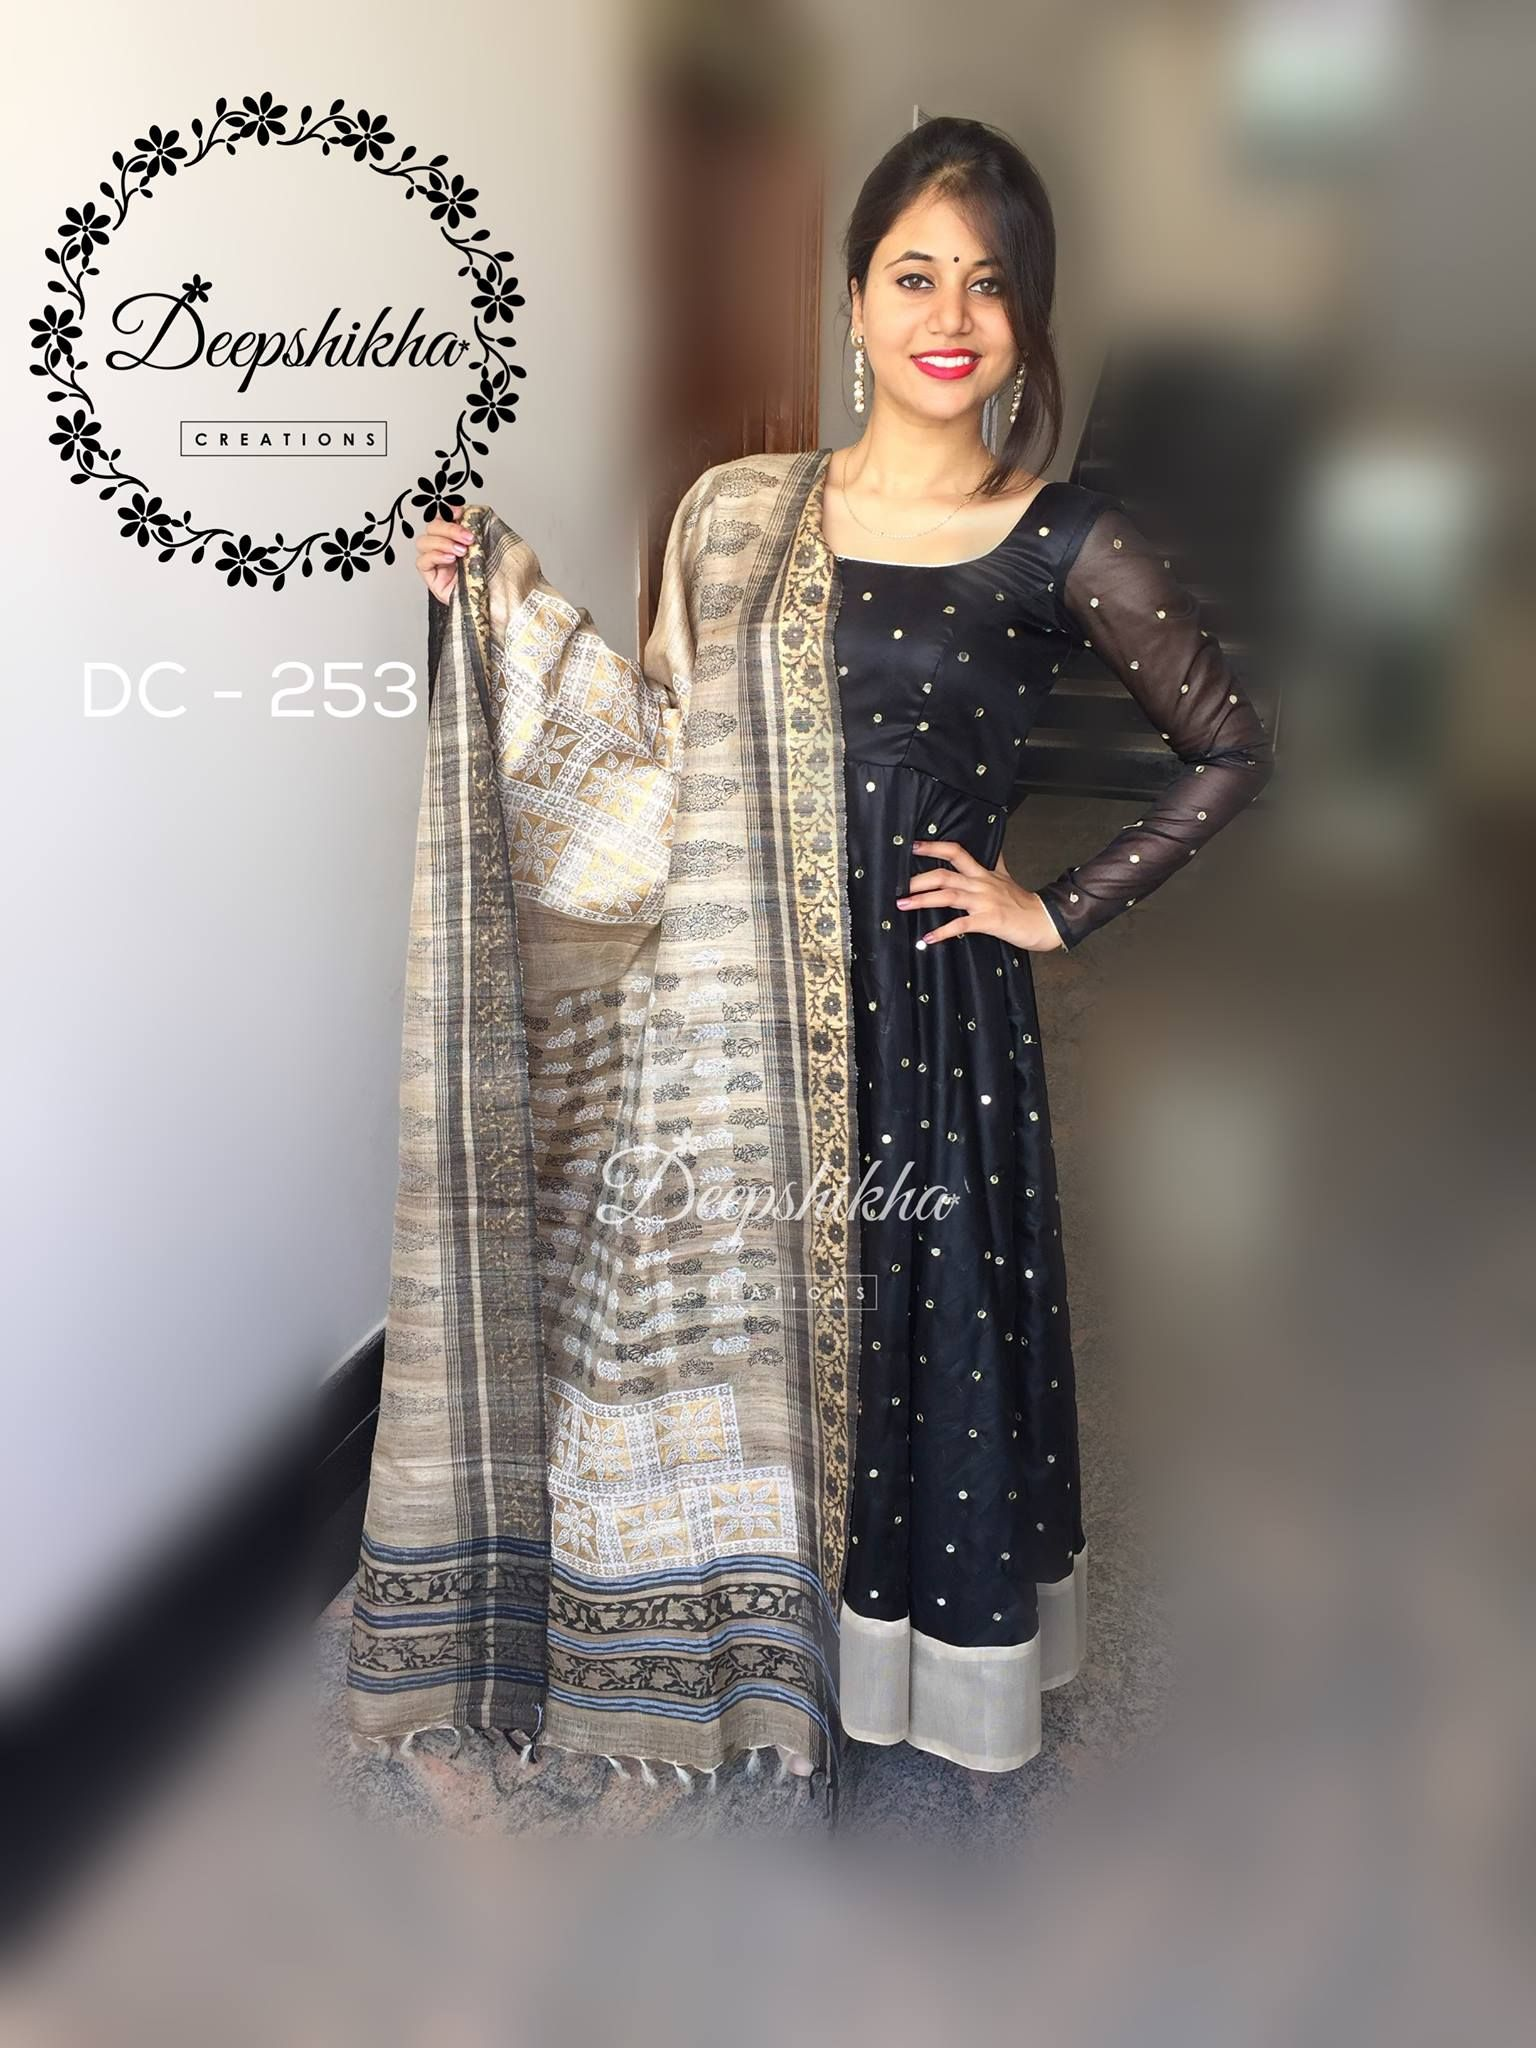 Pin by Naagini Chaitanya😊 on Anarkali suit in 2019 | Girls frock